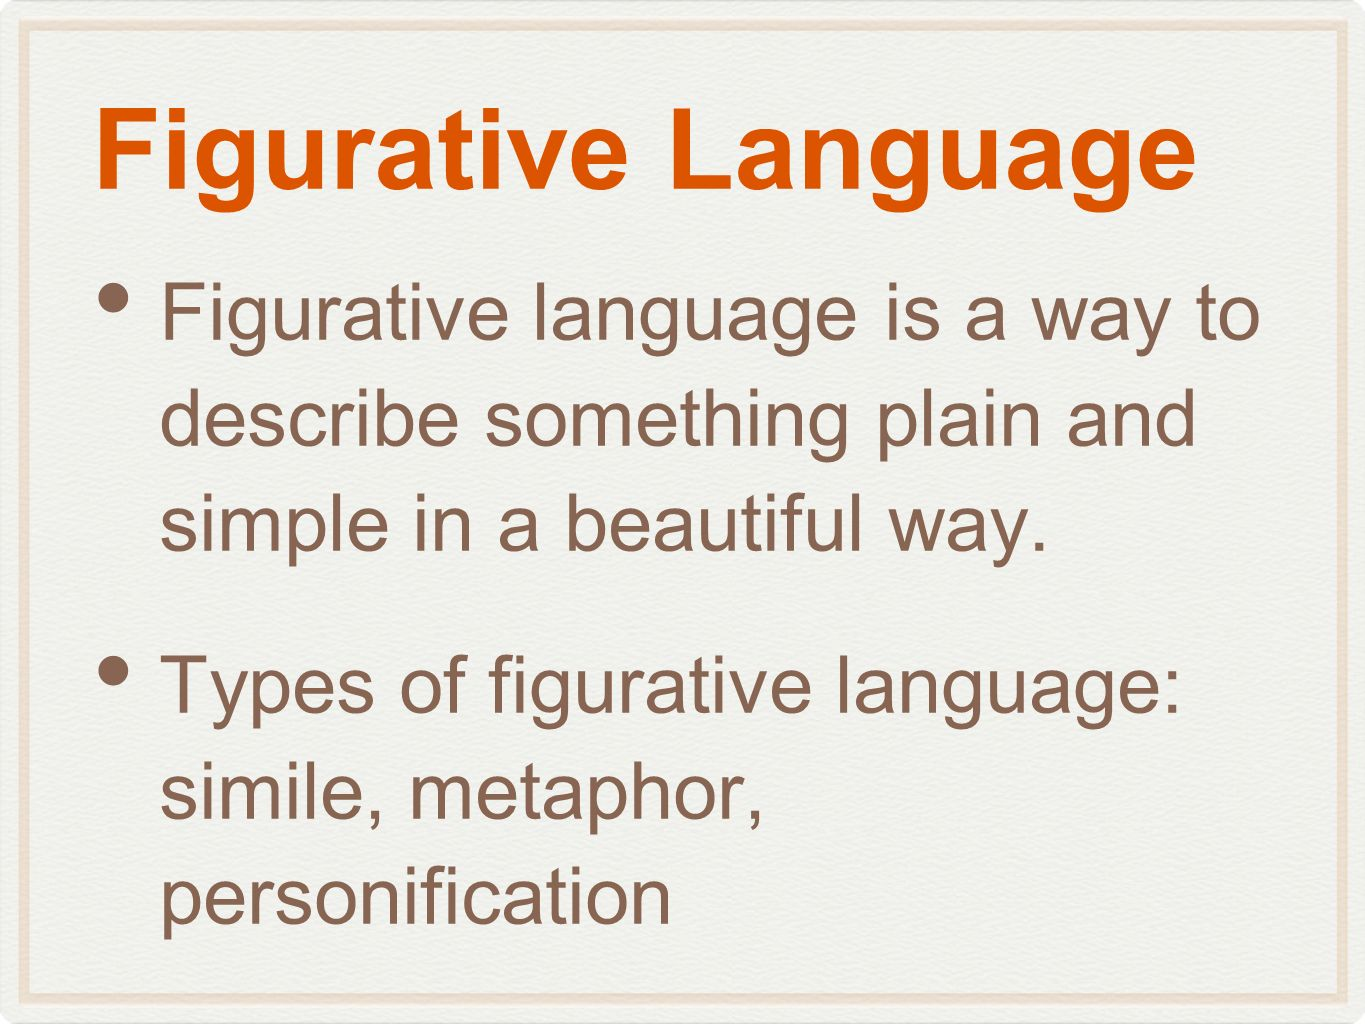 Figurative Language Figurative language is a way to describe something plain and simple in a beautiful way.